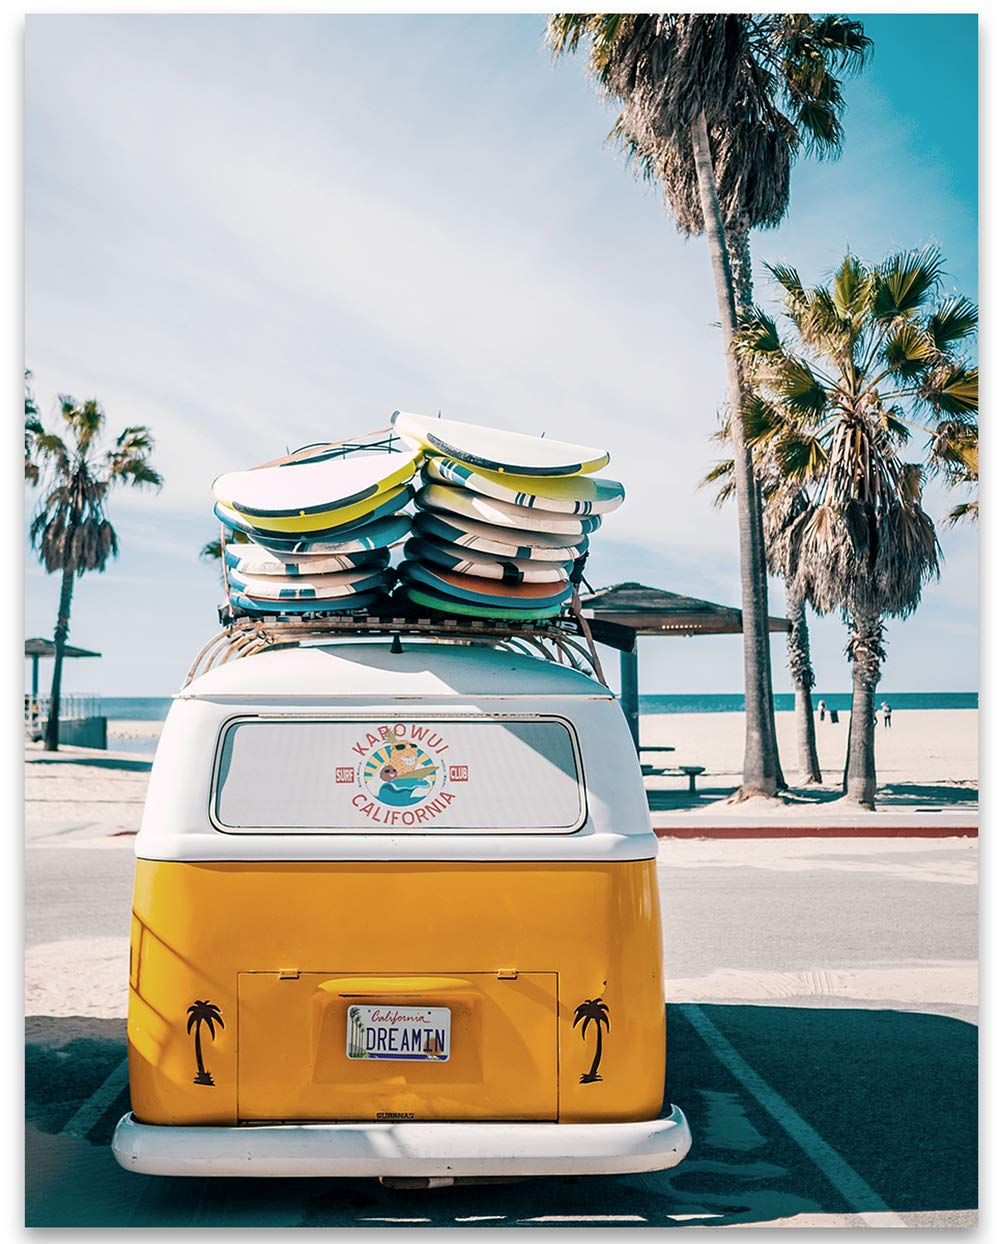 Lone Star Art VW California Dreamin Surf Van - 11x14 Unframed Print - Makes a Great Beach House Decor and Gift to Volkswagen Owners Under $15